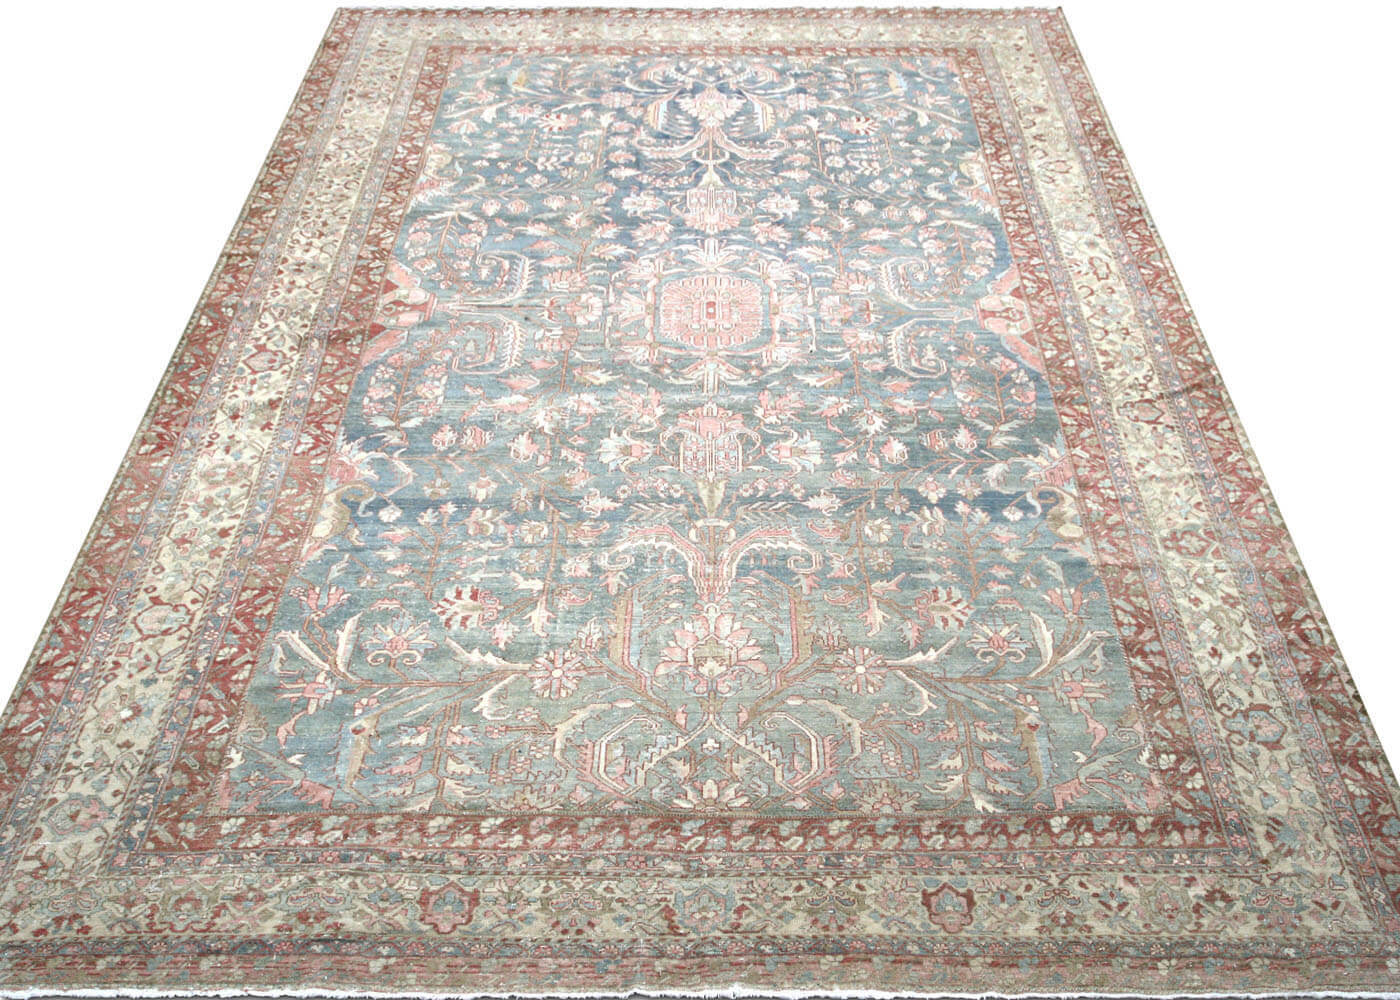 "Semi Antique Persian Baktiari Carpet - 12'7"" x 18'3"""